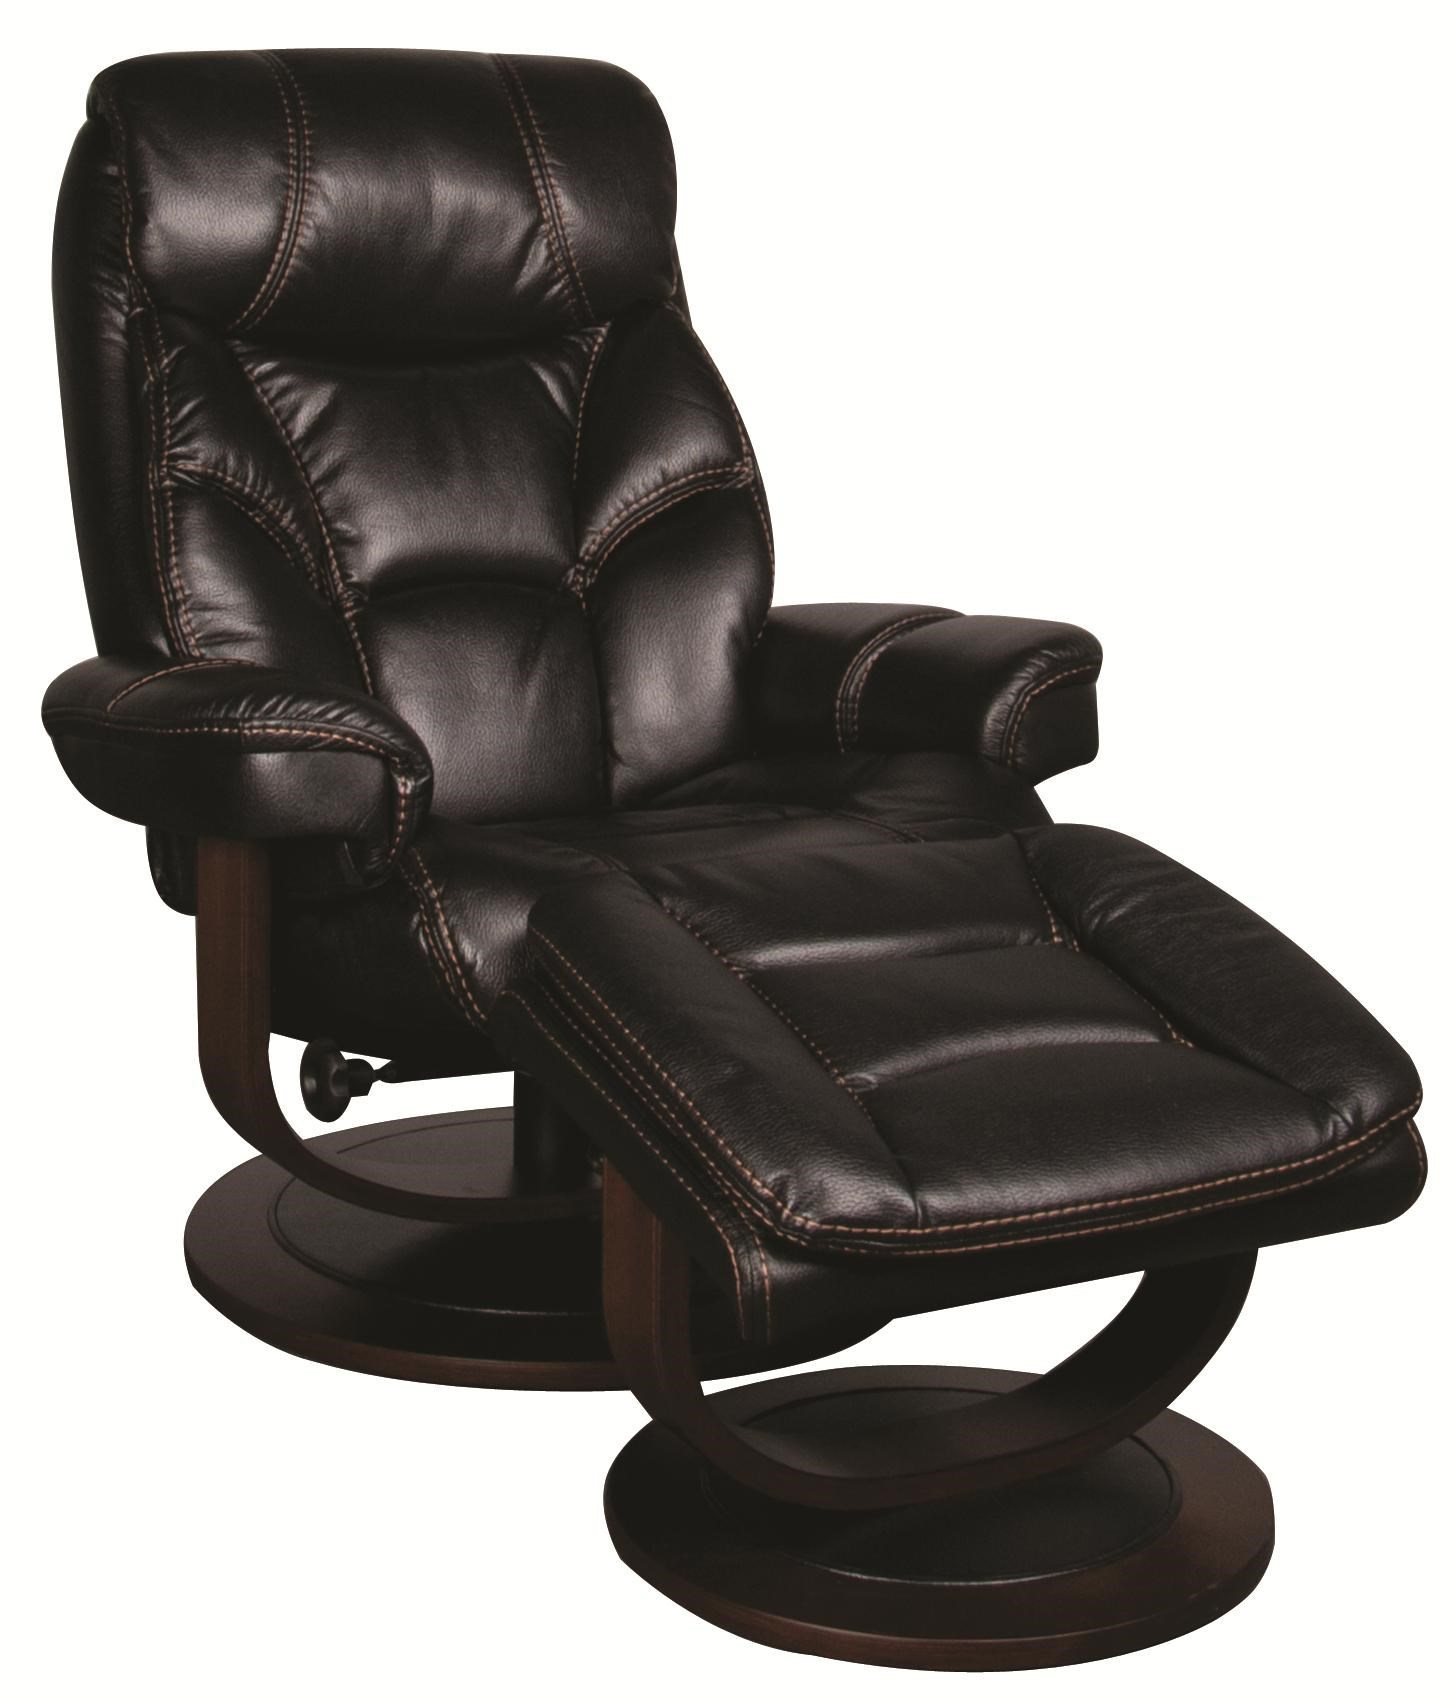 Morris Home SaulSaul Swivel Recliner With Ottoman ...